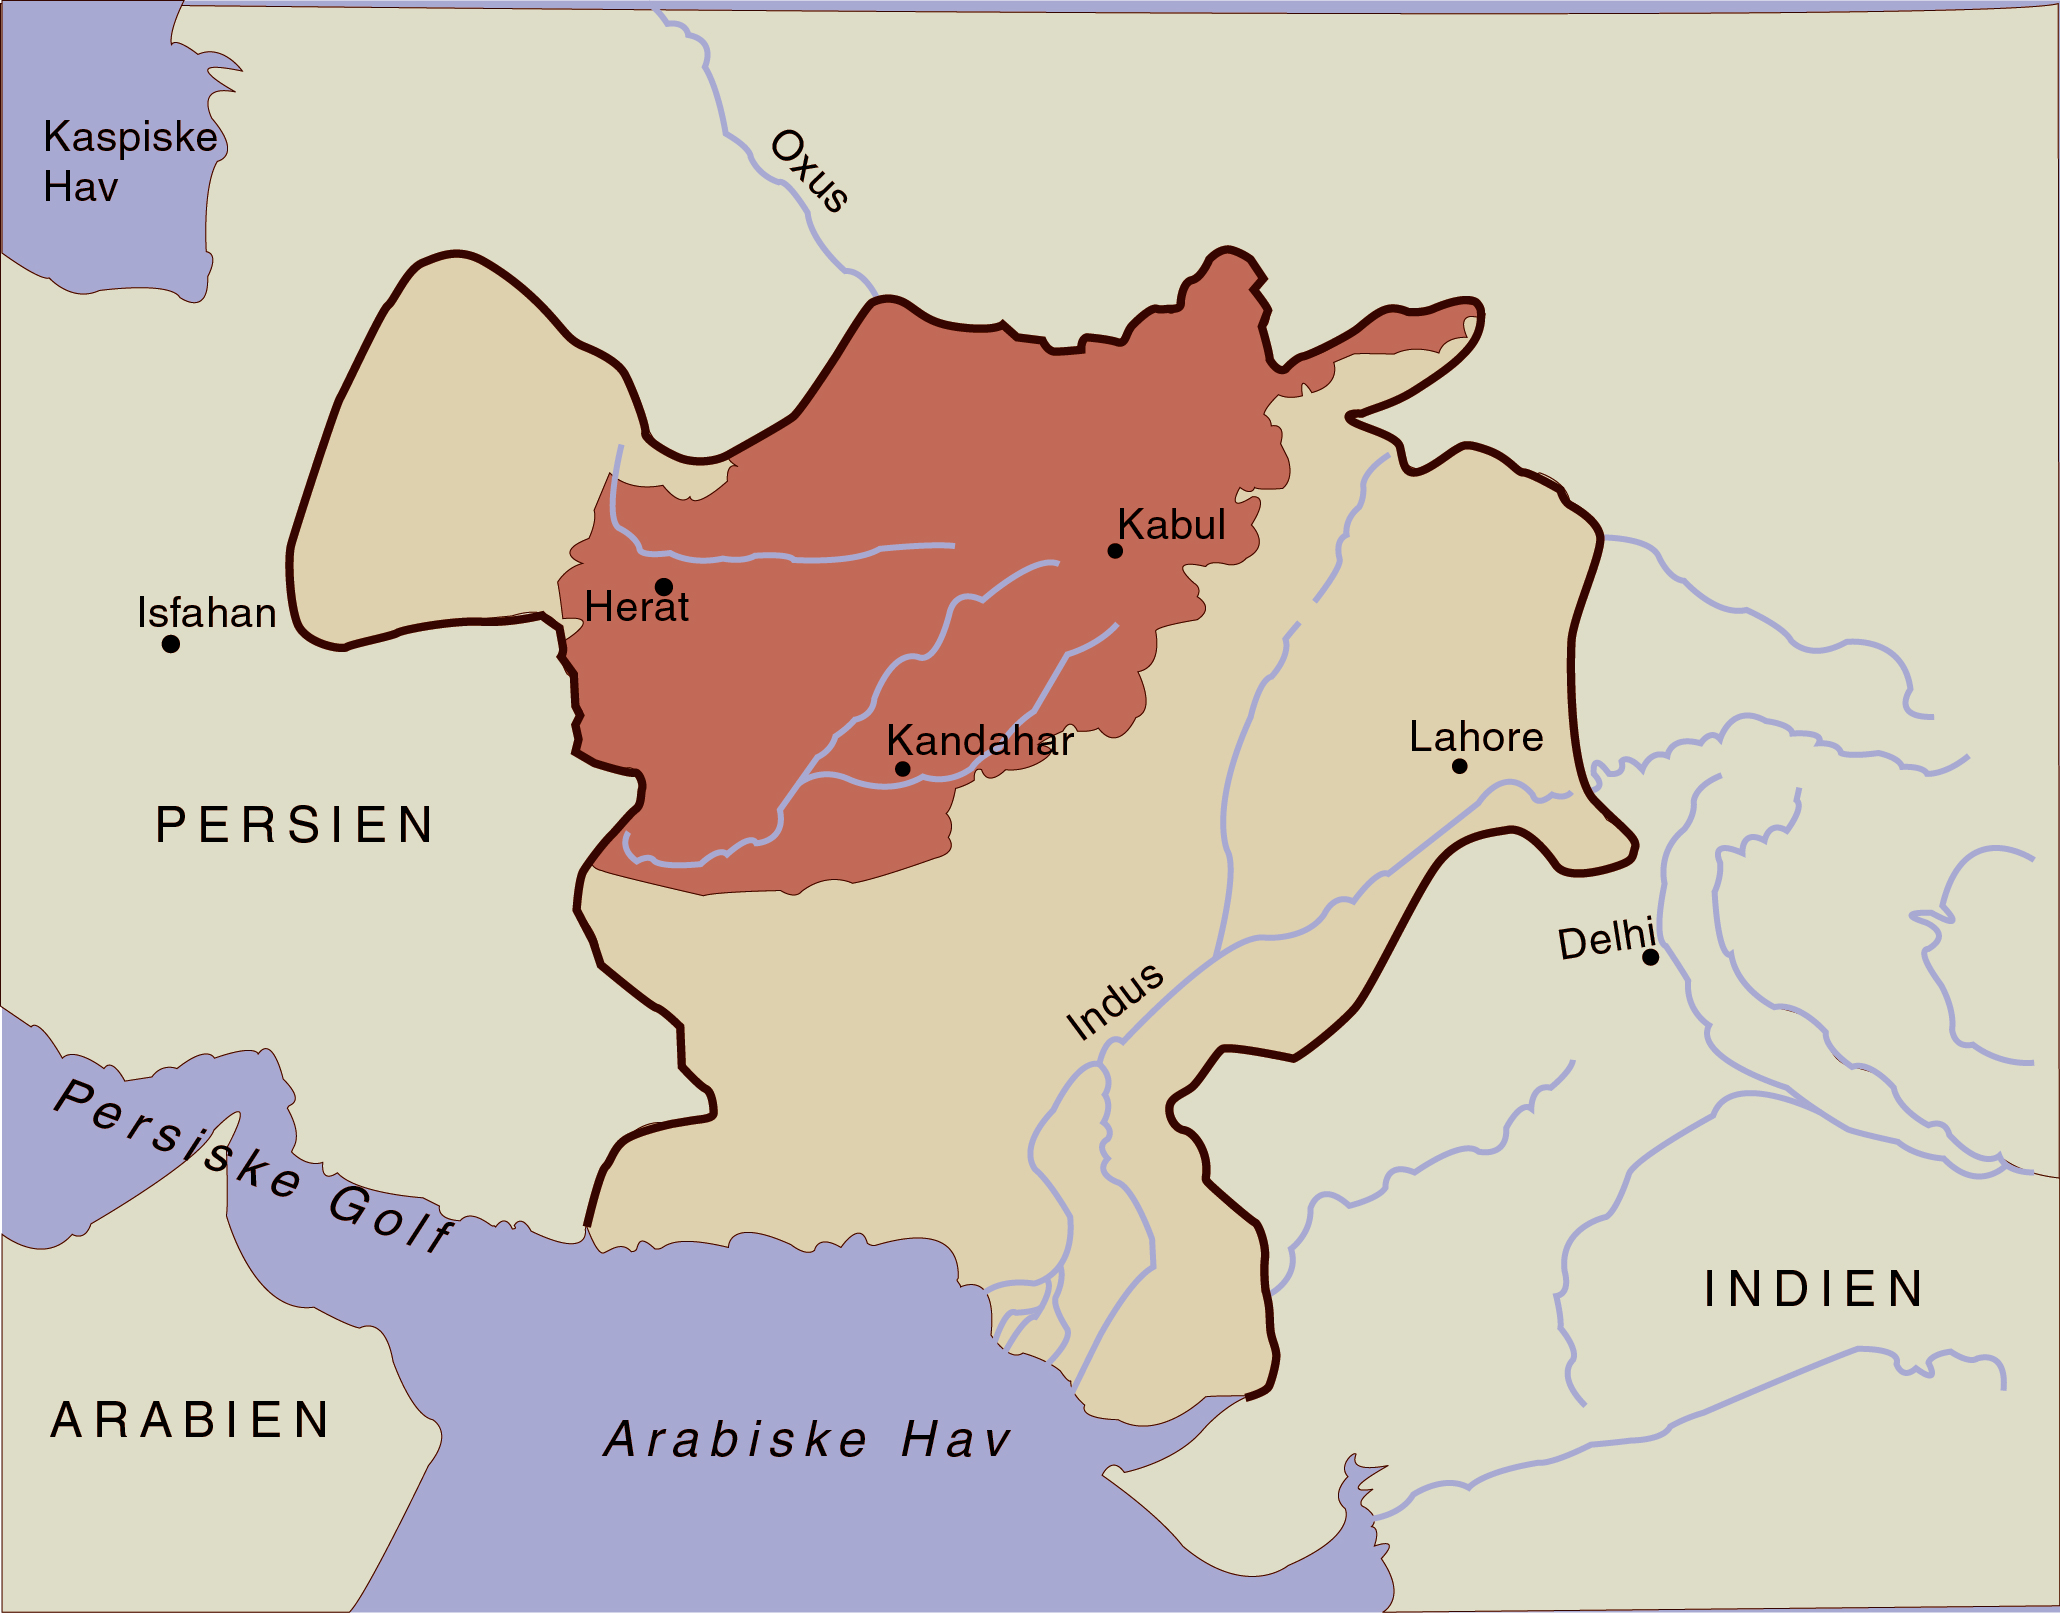 The extent of Ahmad Shah's kingdom in the mid-eighteenth century. The extent of modern Afghanistan is marked in red. Made by Moesgaard Museum